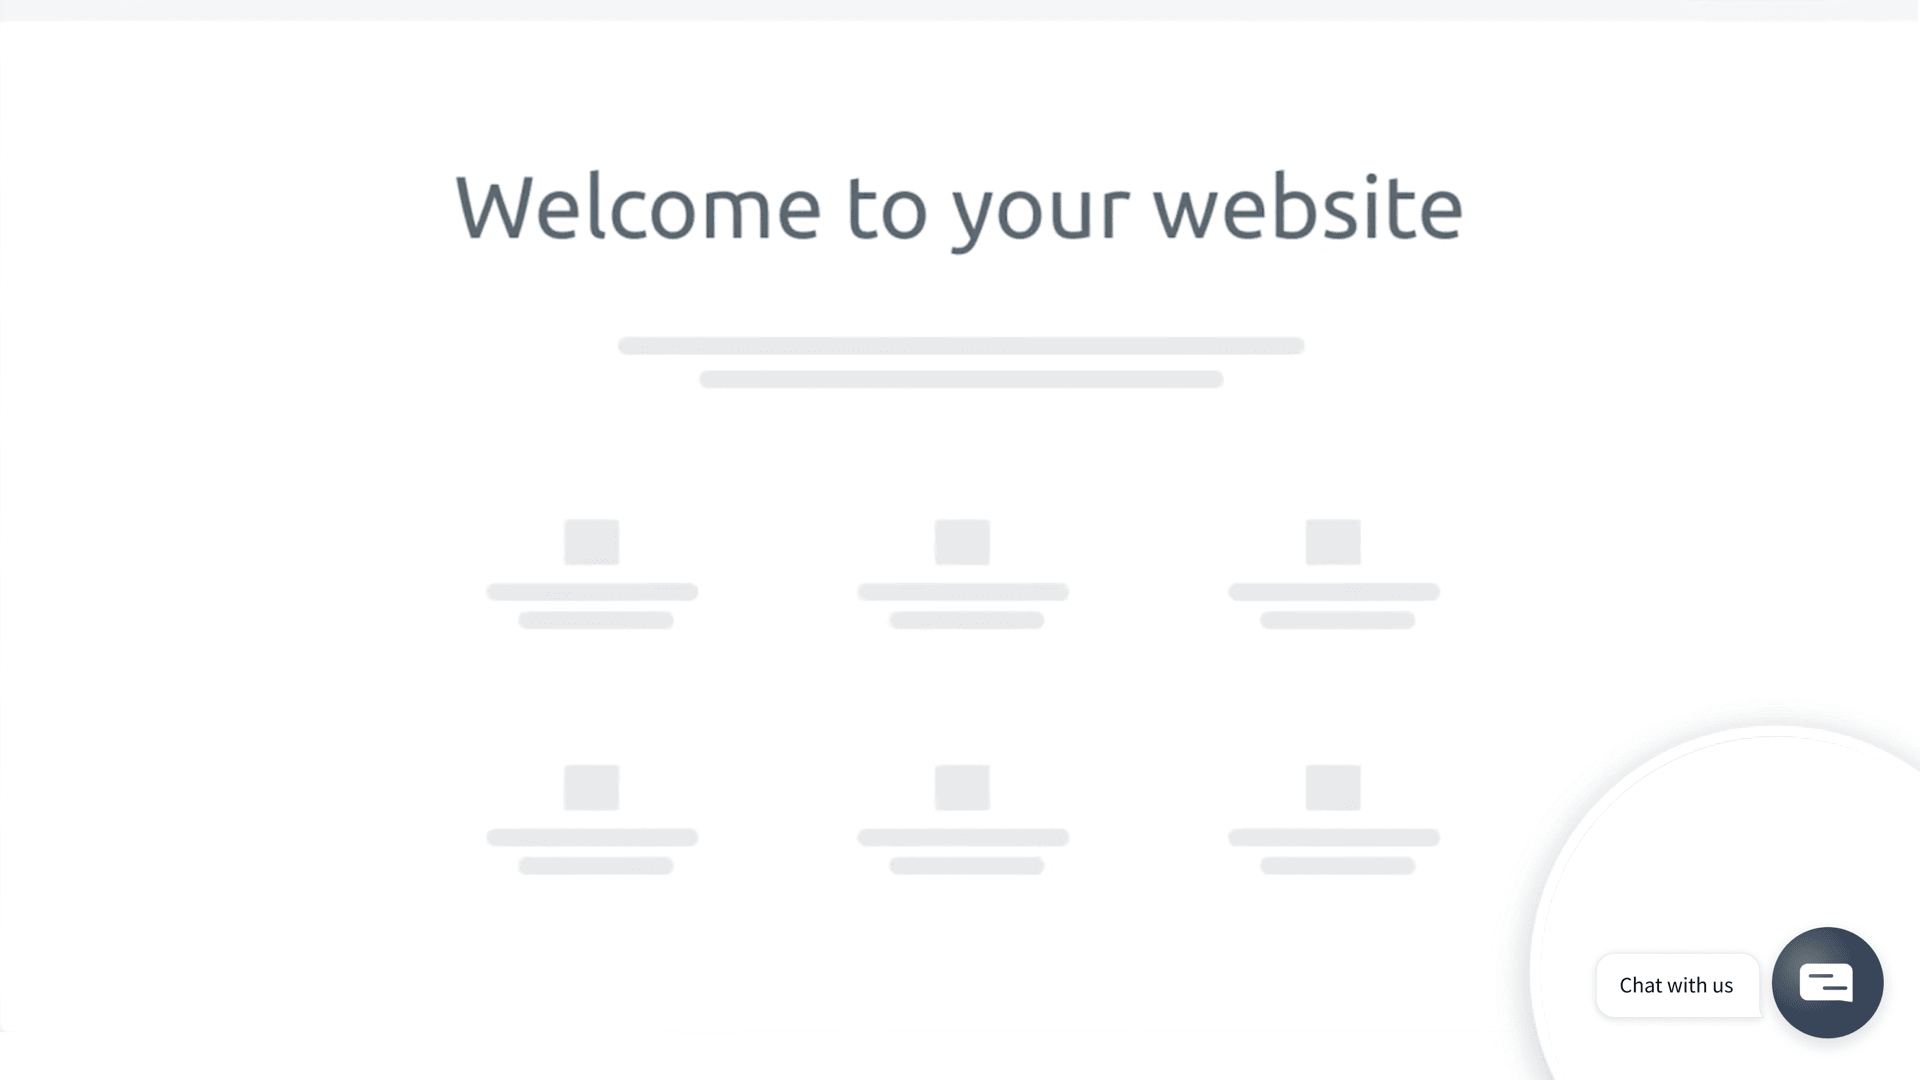 The chatsupport widget appearing on the bottom right corner of the Wordpress website